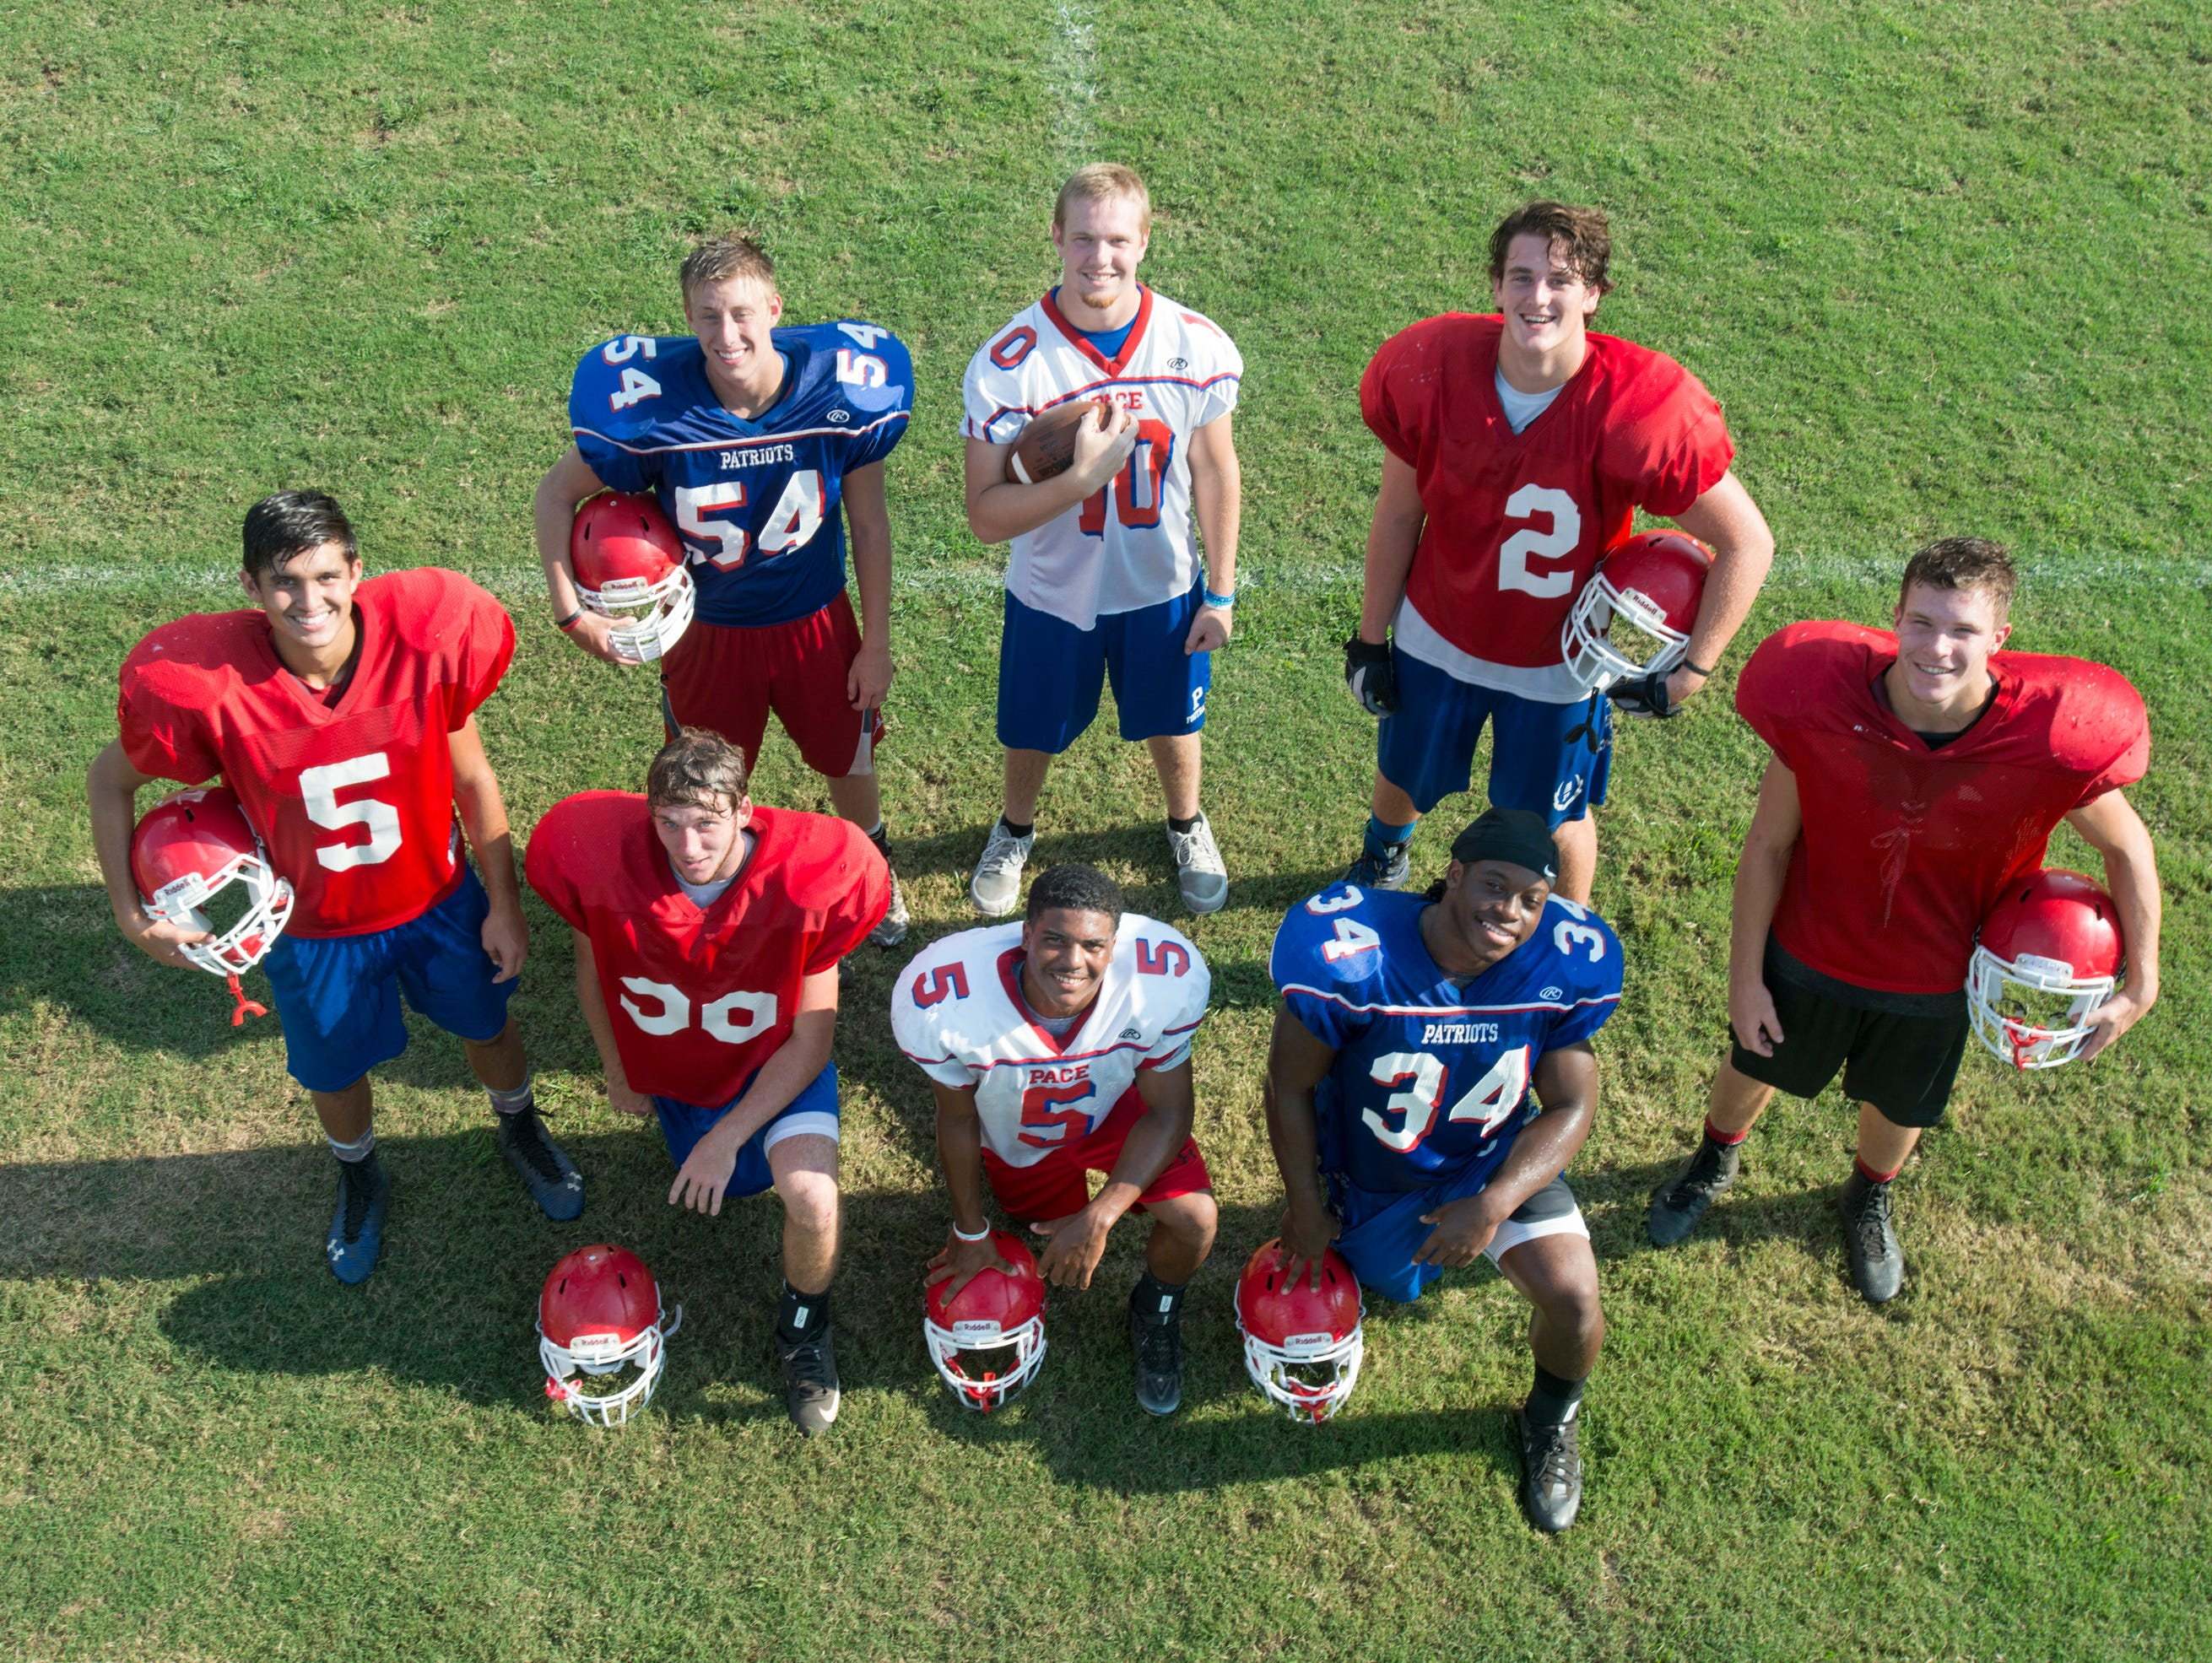 Clockwise from left: Scott Marshman (5), Spencer Hill (54), Jaxon Adams (10), Bailey Clark (2), Cameron Bozeman, Anthony Johnson (34), Tony Gibson (5), and Riley Fields (56) during Pace High School football practice on Wednesday, August 3, 2016.